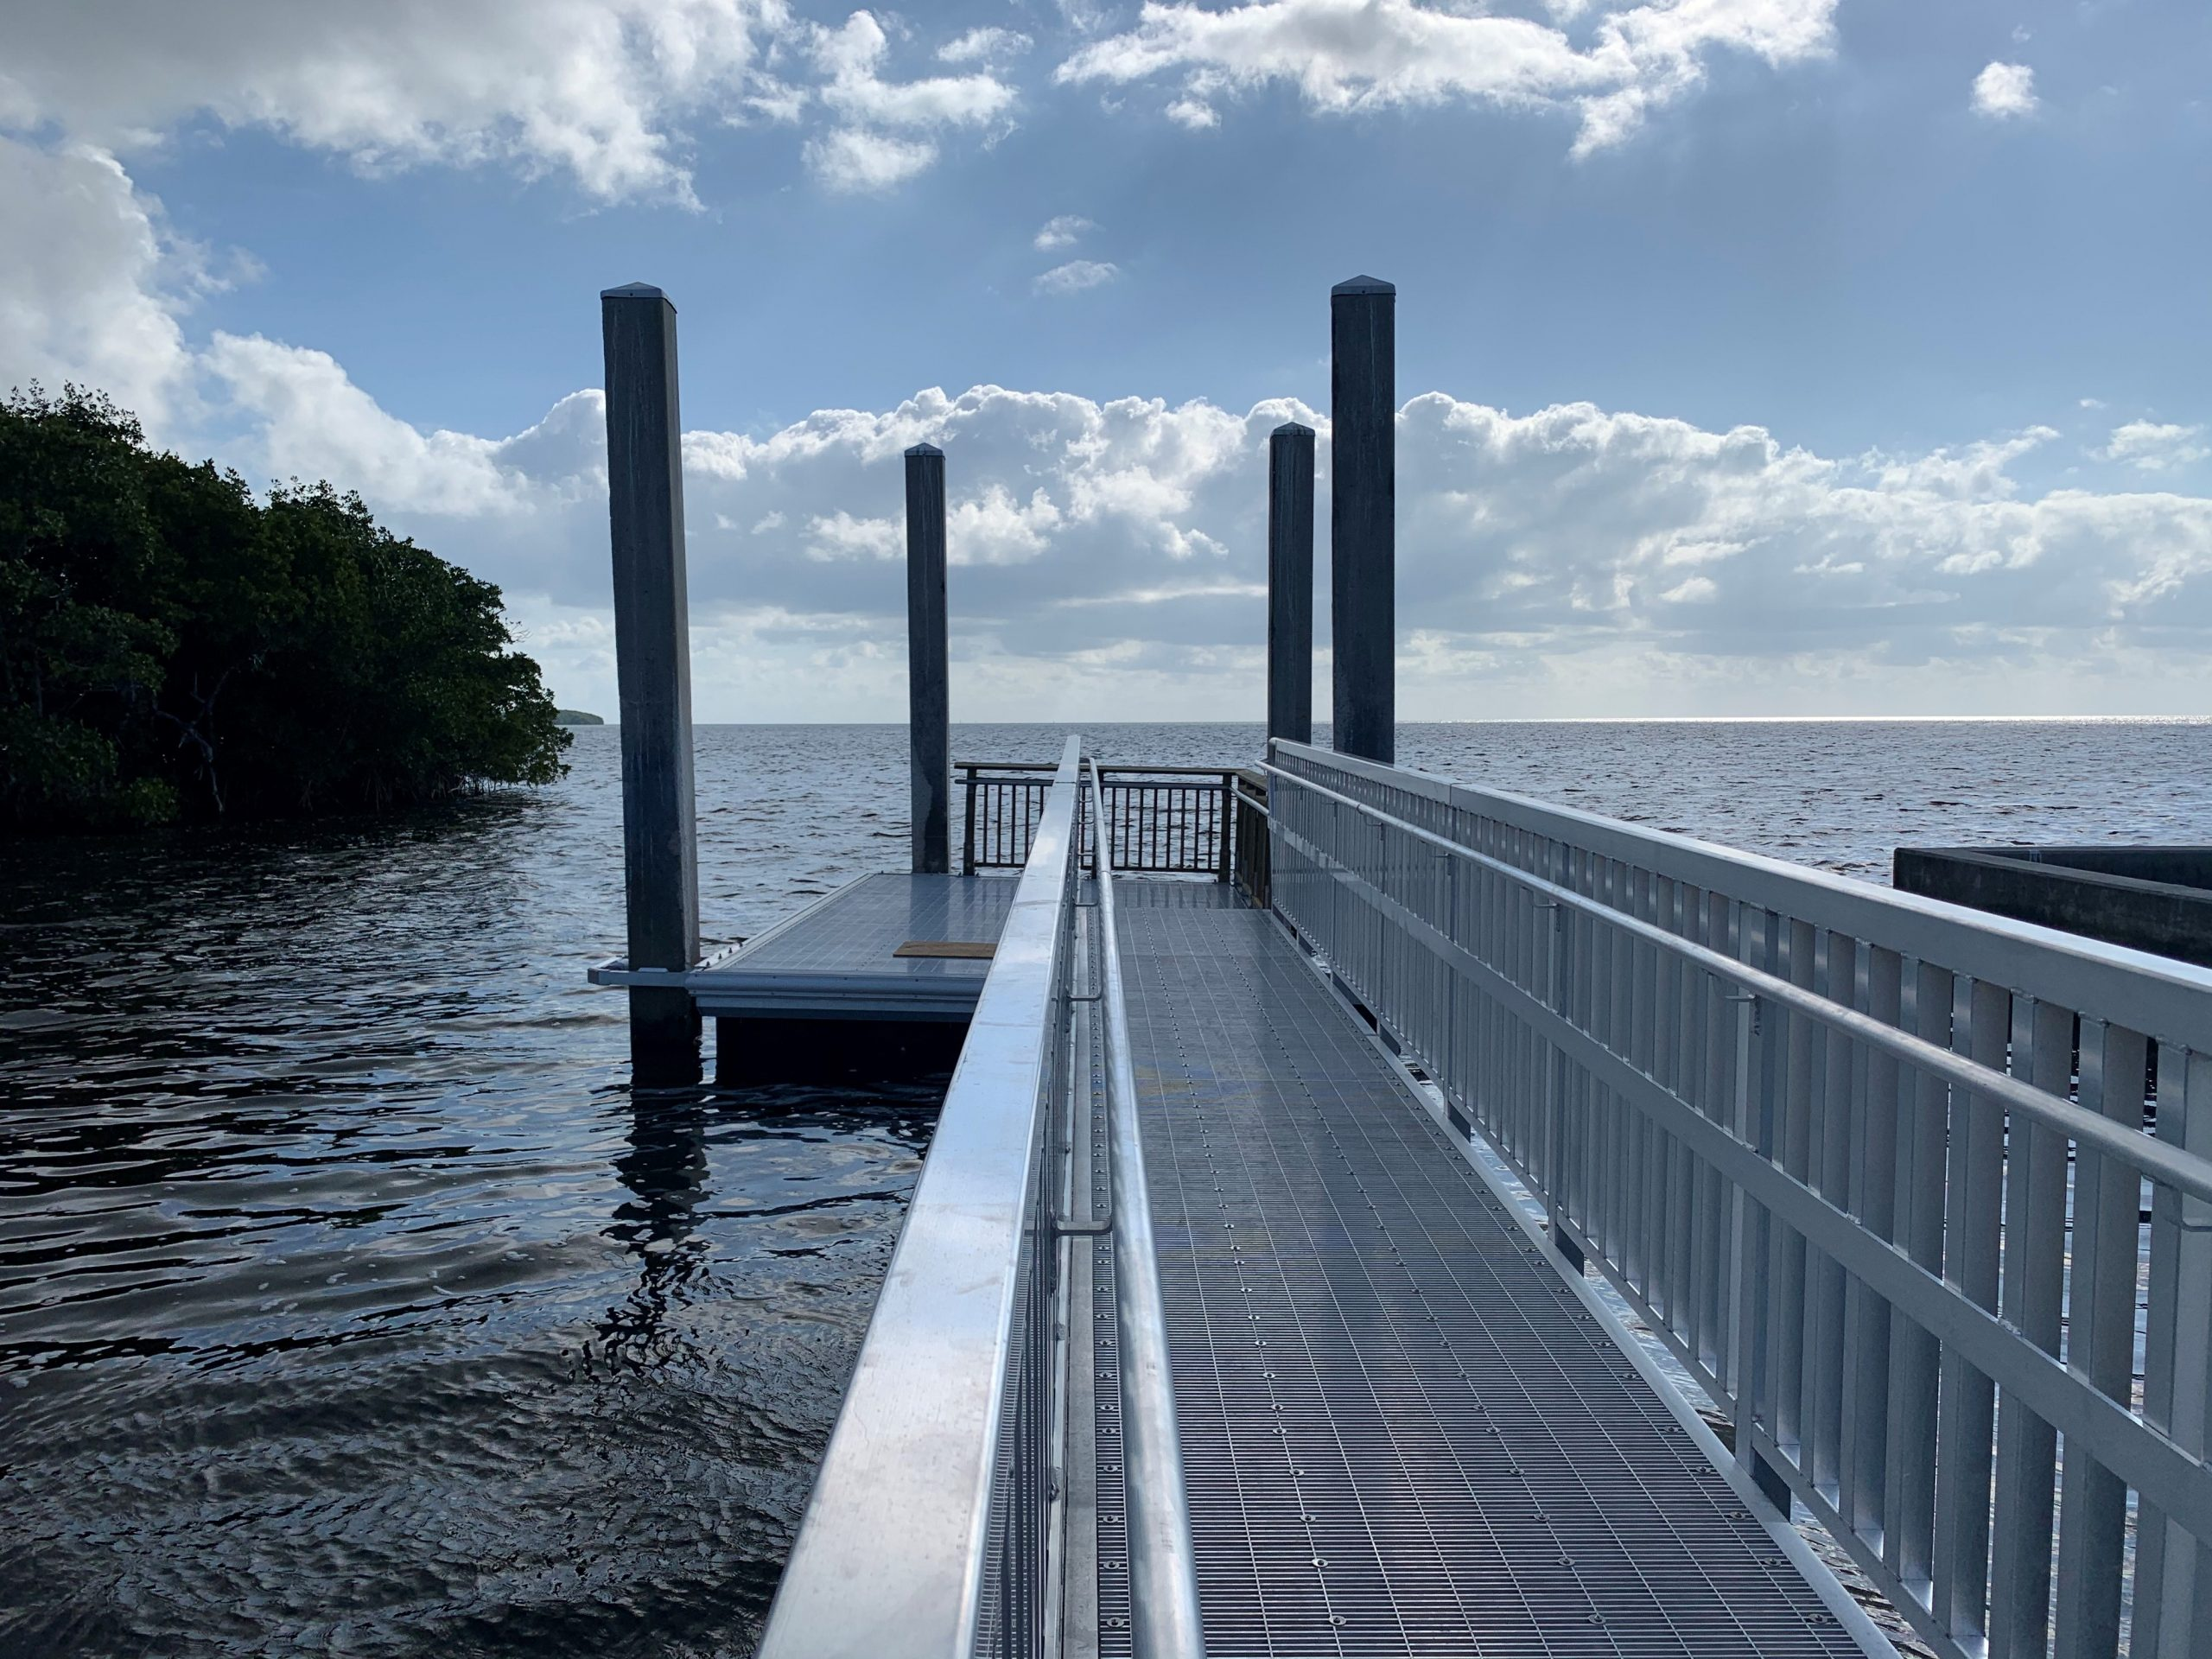 New dry dock located at the People's Dock of Deering Estate